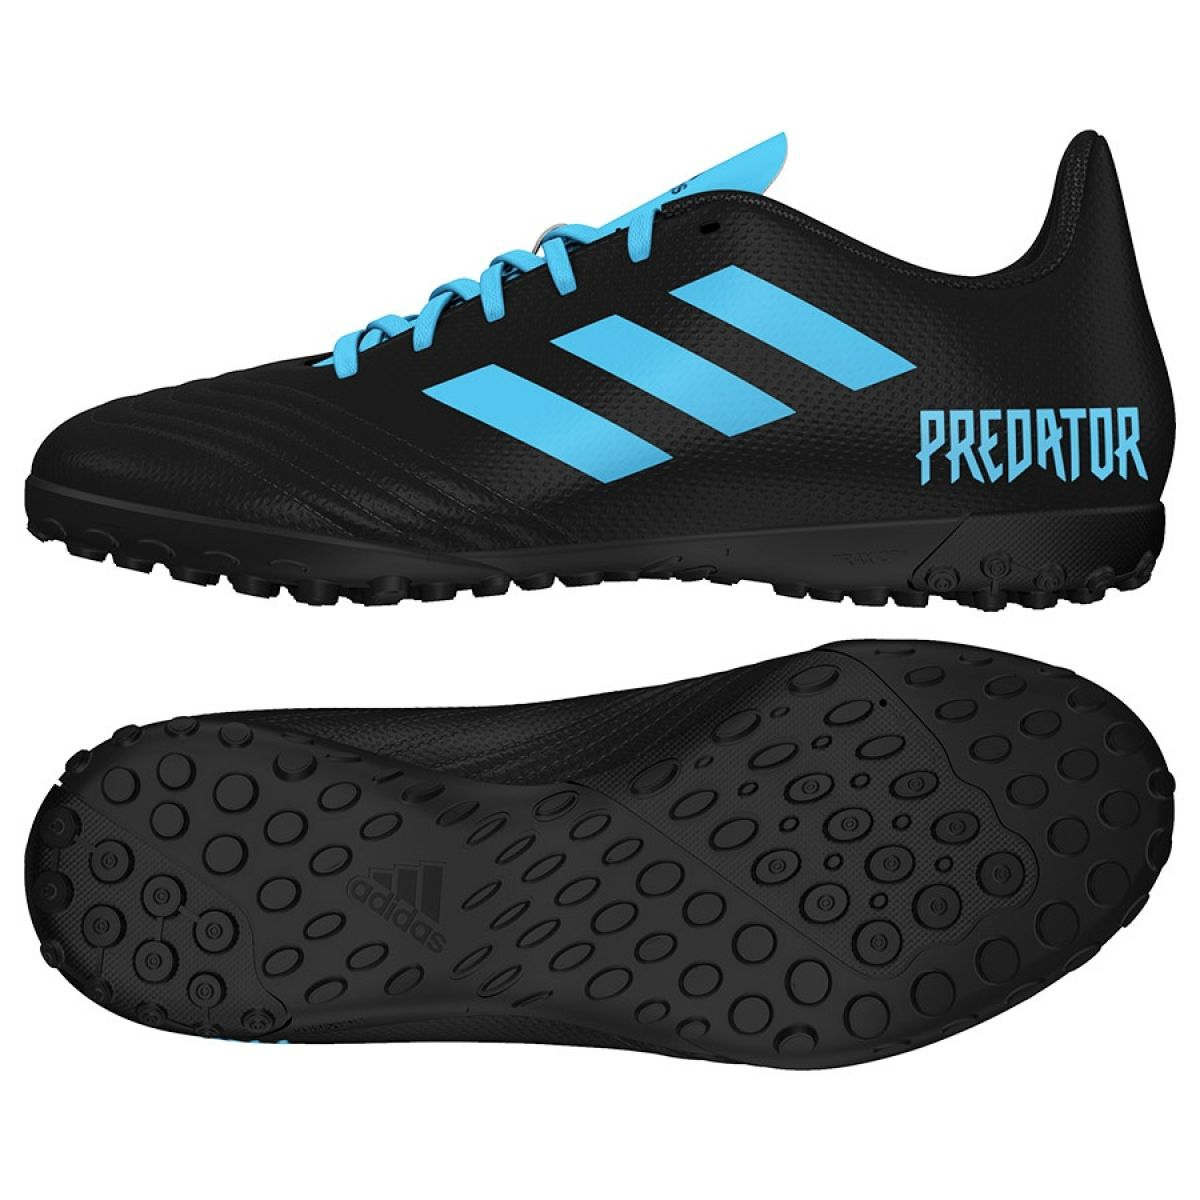 diseño Ostentoso Soldado  Football boots adidas Predator 19.4 Tf Jr G25826 black multicolored -  ButyModne.pl